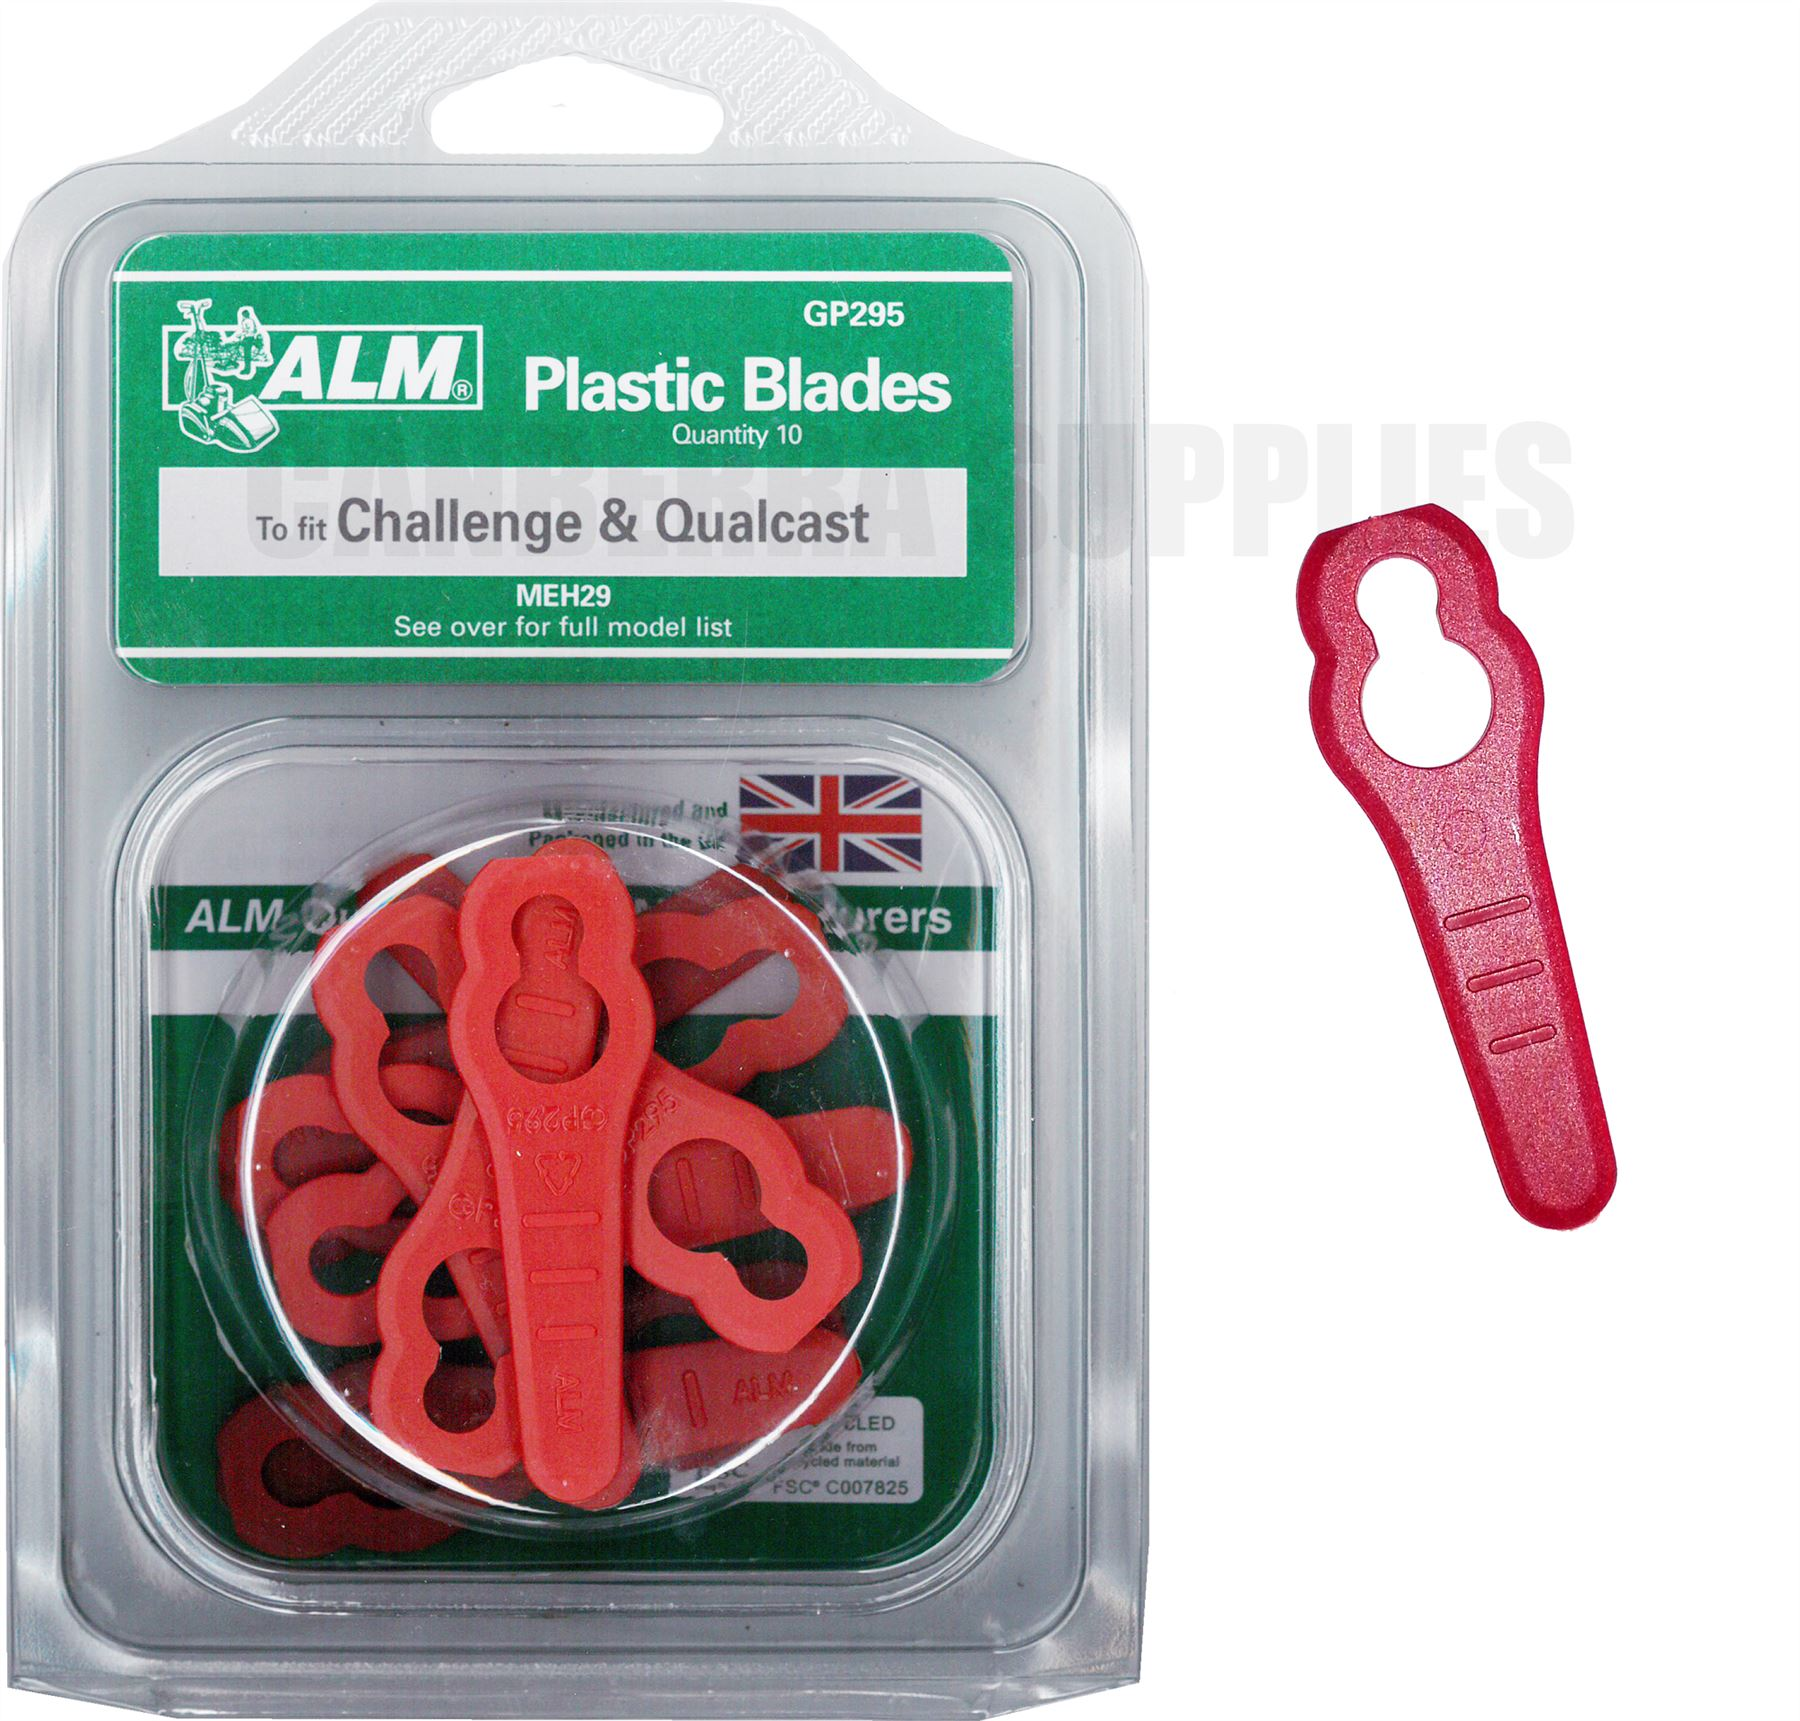 ALM Lawn Mower Plastic Blades Replacement Blades Outdoor Power Tool Accessories